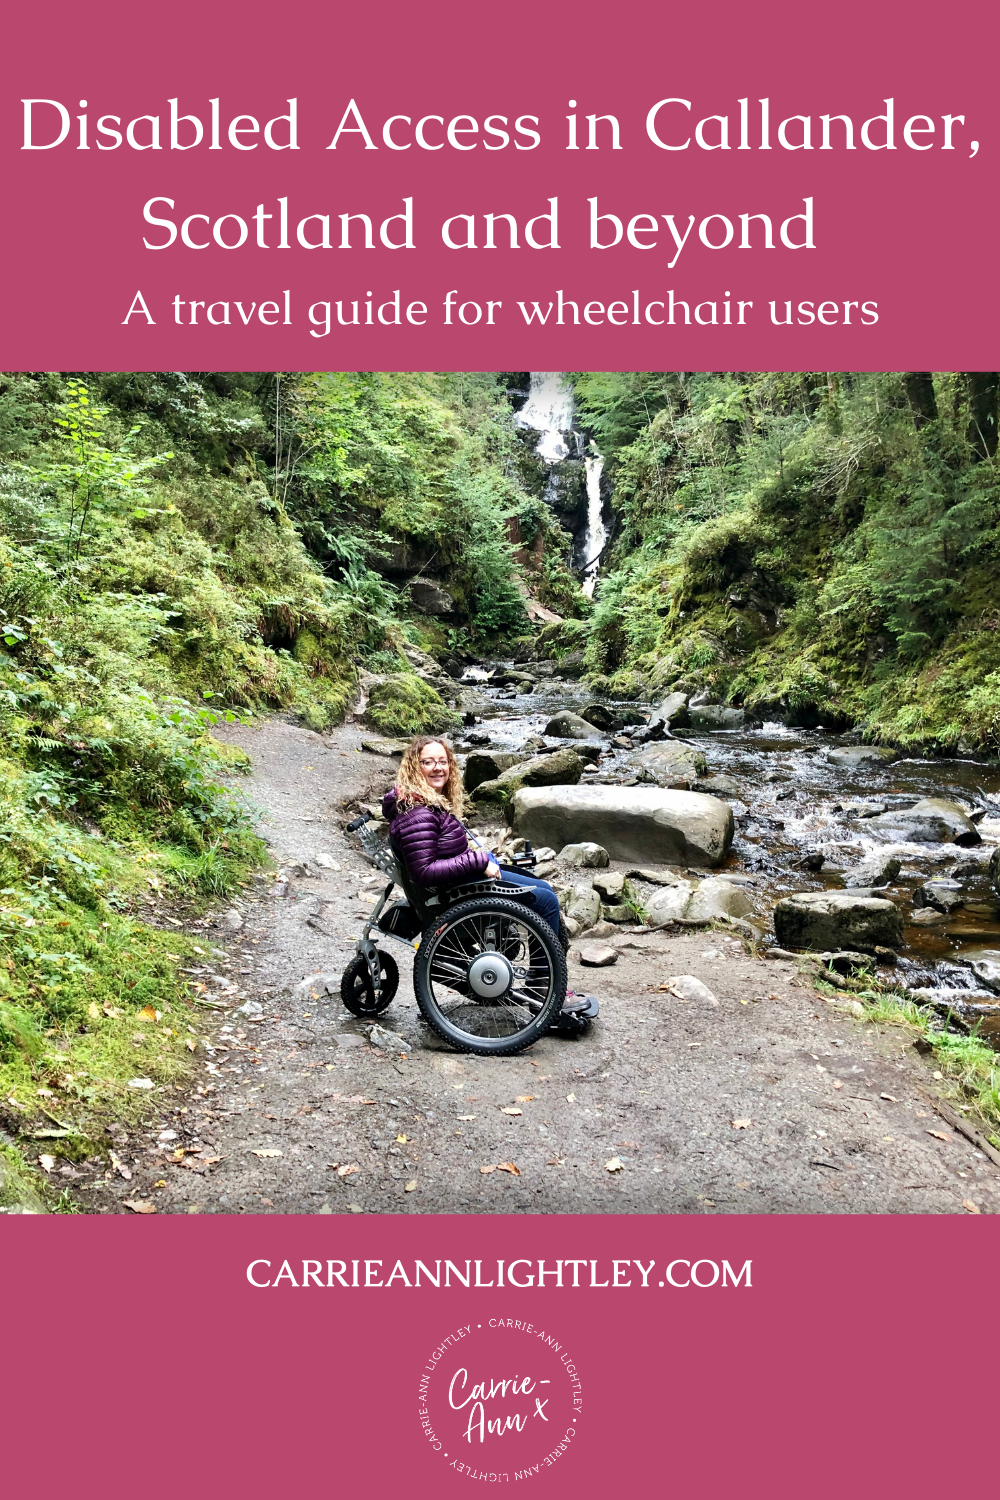 Top of image reads - Disabled Access in Callander, Scotland and beyond a travel guide for wheelchair users. Middle of image shows Carrie-Ann sitting in front of a waterfall in her wheelchair. Bottom of image has this blog's website address and logo